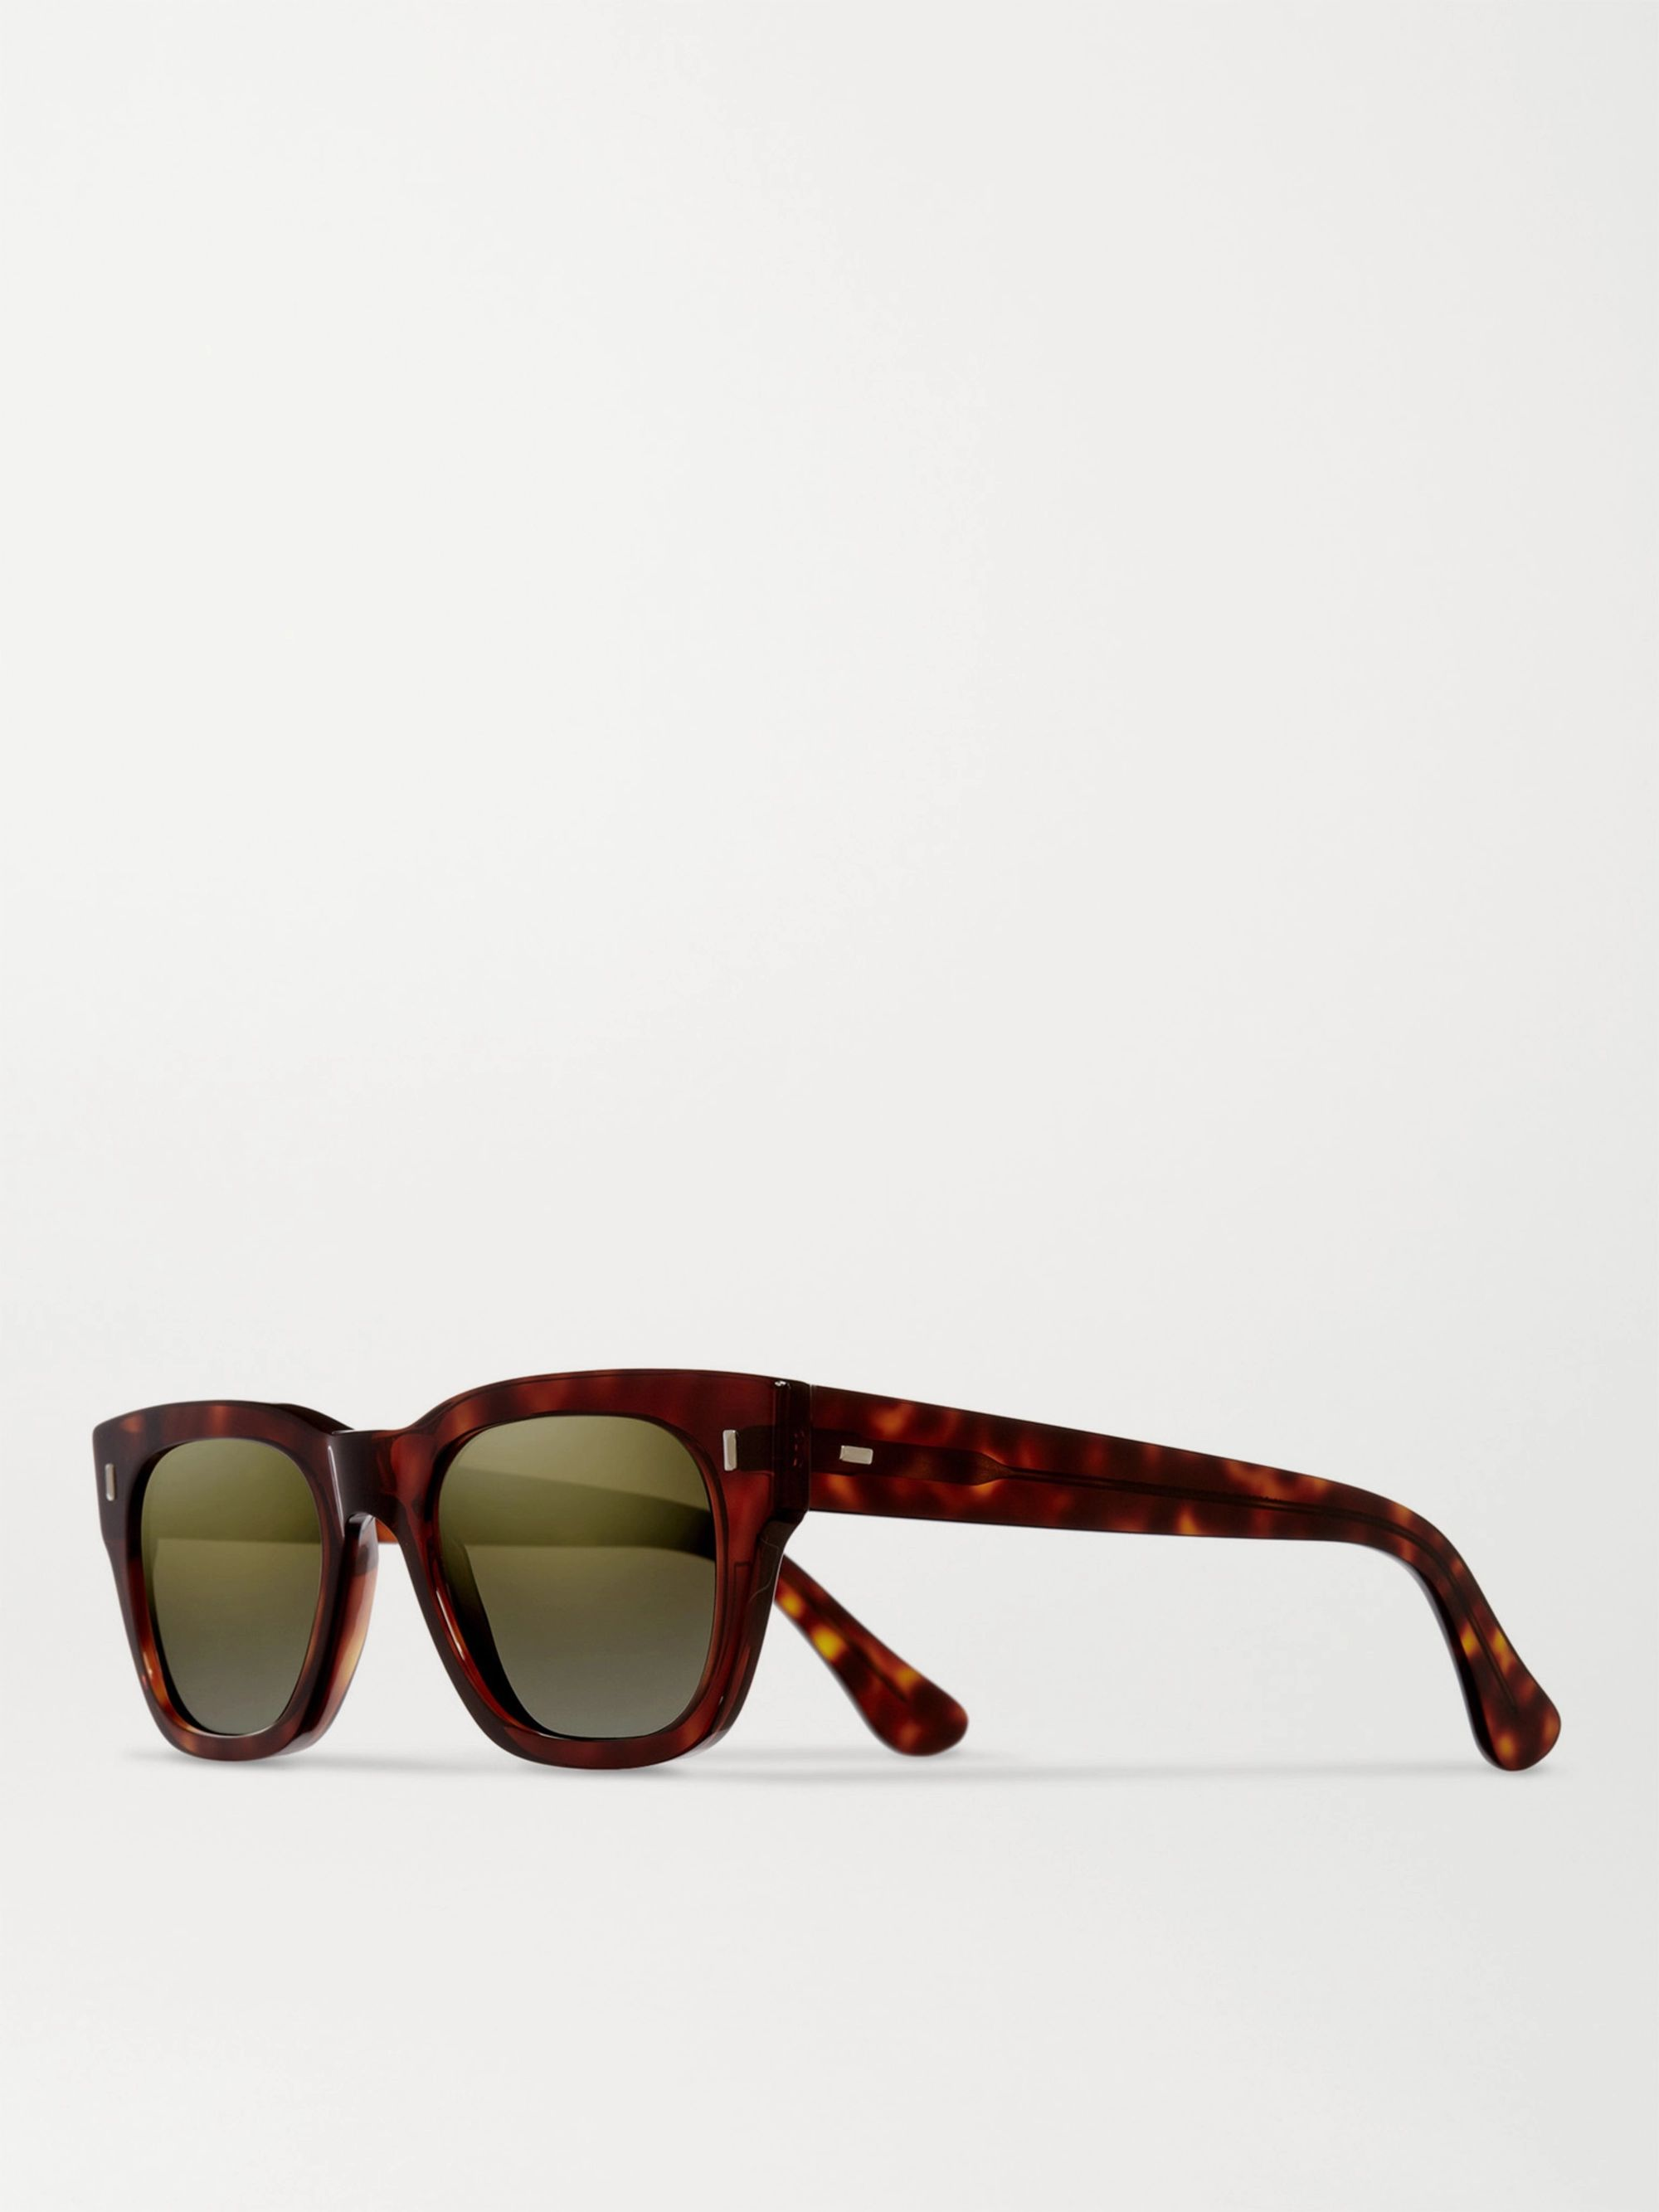 Cutler and Gross D-Frame Tortoiseshell Acetate Sunglasses